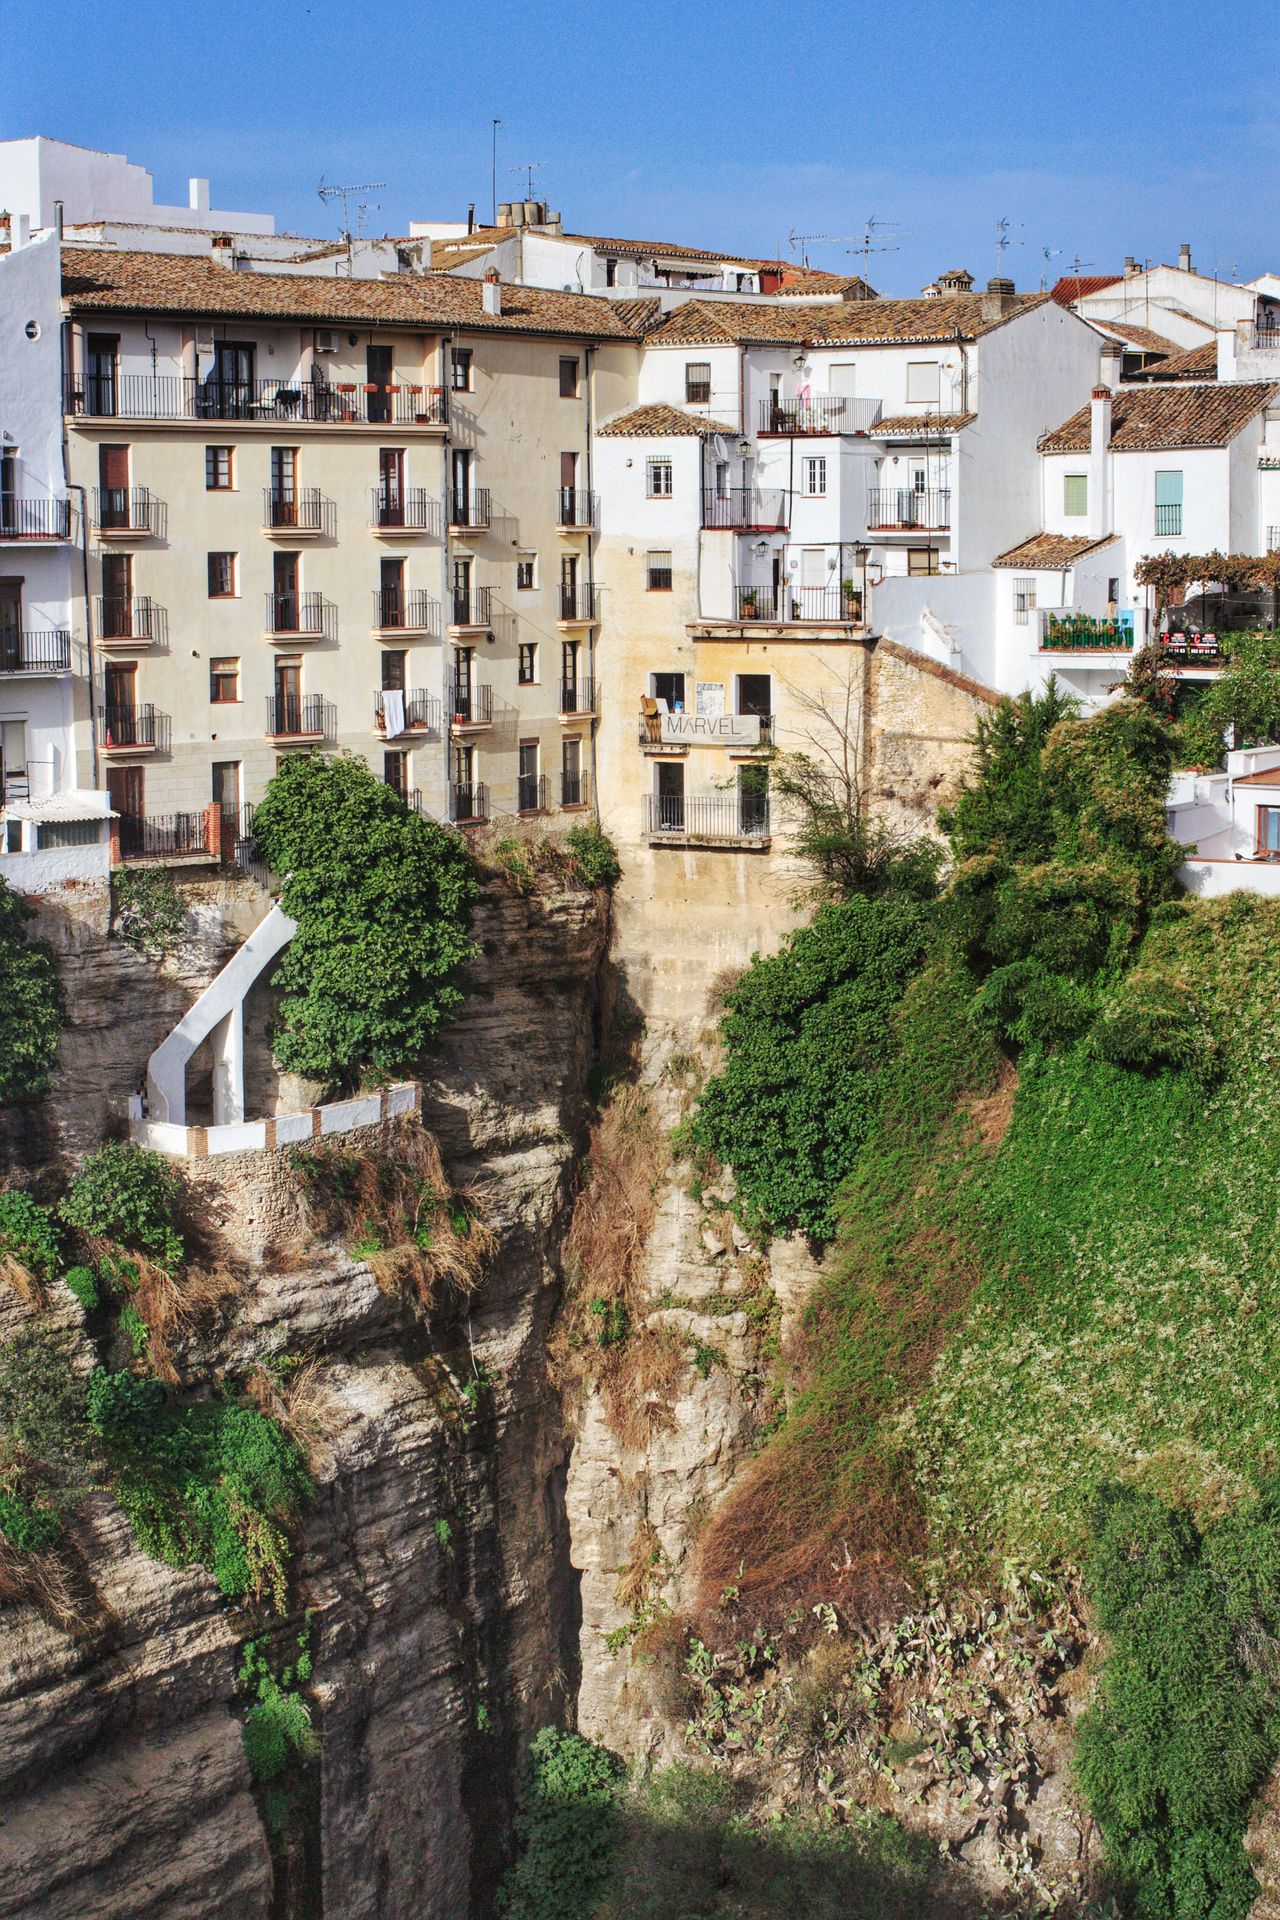 Architecture Building Exterior Built Structure Ronda Ronda Spain Ronda, Malaga Ronda Andalucia Cliff Cliffs Cliff Face Cliff Edge Tall Buildings Tall Building Andalucía Andalucia Spain Andalucian Town No People Outdoors Day Deep Valley Cliffside Cliff View Clifftop Near The Edge Scenic Landscapes